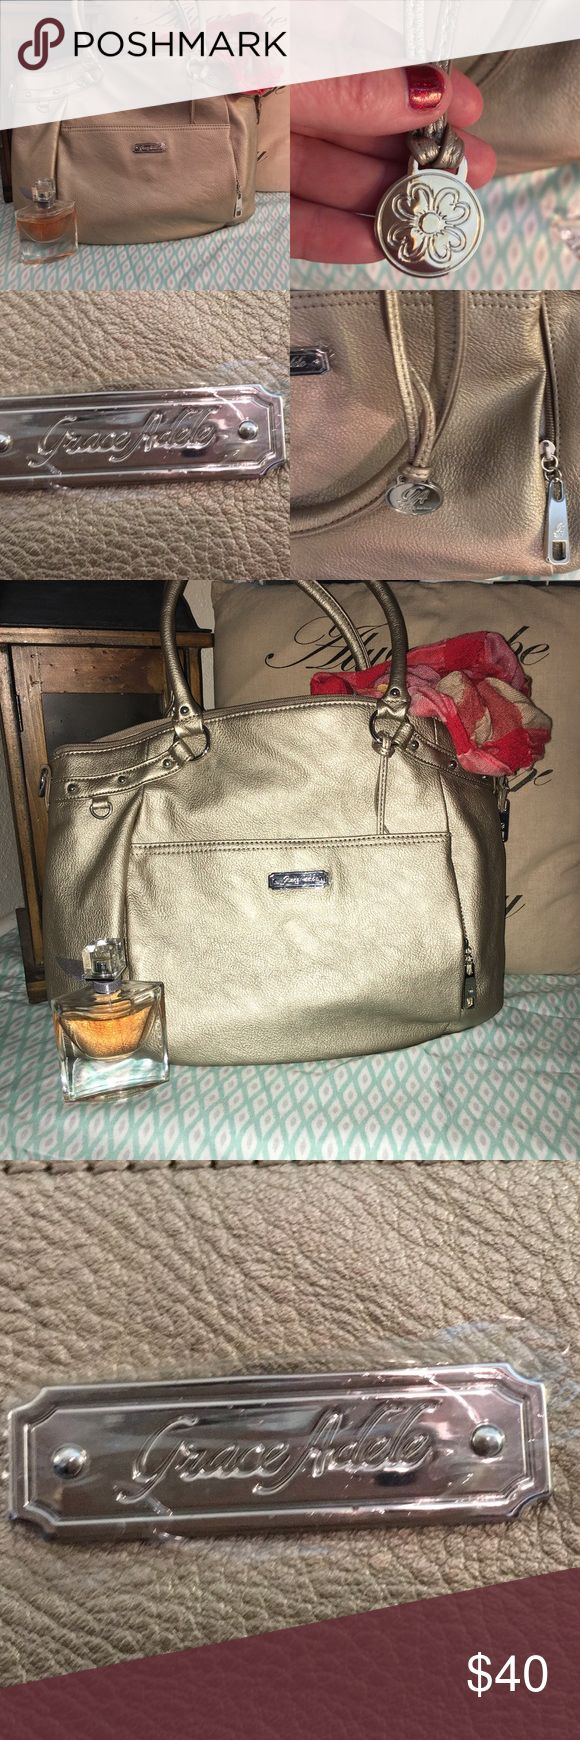 """NWOT/never carried Grace Adele Handbag -make offer NWOT- Never carried, still has plastic on the name plate FLAWLESS inside and out this is LOVELY and  pristine. 17""""L, 12""""H, 5""""W with a 9"""" handle drop.  Vegan Leather. Color is """"metallic"""" includes a bag charm. Tons of storage include a cell phone pocket, and multiple storage pockets.                 ✅Make an offer 🚫Smoke free home! 📦 Same or next Day Shipping from TN 🎸(excludes weekends & Holidays) 🛍- Thank you for shopping my closet Grace…"""